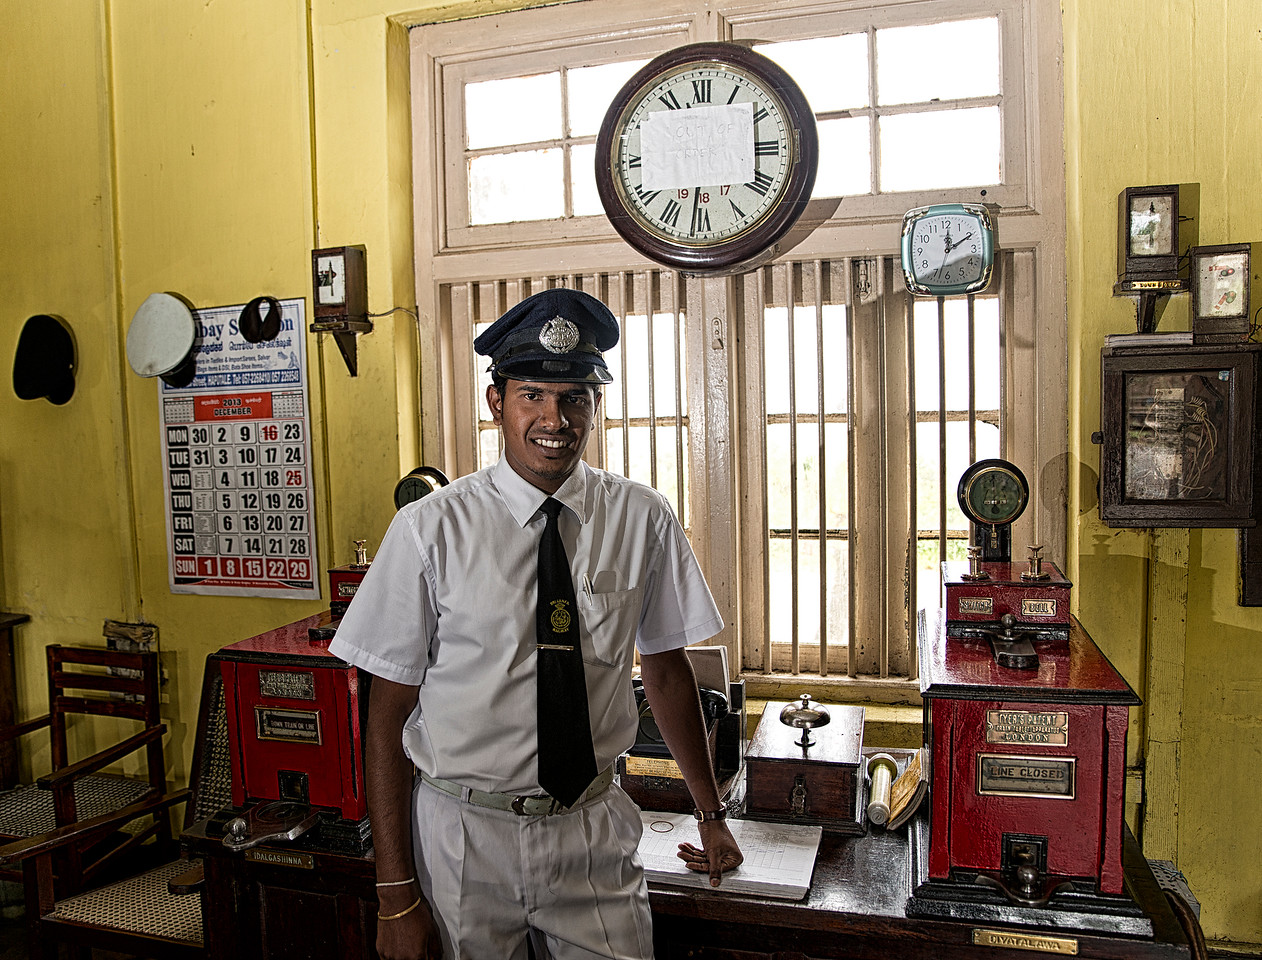 The railway network was introduced by the British colonial government in 1864. The main reason for building a railway system in Sri Lanka (then Ceylon) was to transport tea and coffee from the hill country to Colombo. Initially the service began with the Main Line of 54 kilometres connecting Colombo and Ambepussa. <br /> <br /> Sir Guilford Lindsey Molesworth became the first chief engineer and later Director General of the government railways. During this time, many Sri Lankans referred to the trains as the Anguru Kaka Wathura Bibi Duwana Yakada Yaka (the coal-eating, water-drinking, sprinting, metal devils).Though the British established the railway system, the golden era of Sri Lanka Railways was during 1955–1970 under the management of B.D Rampala, the most respected chief mechanical engineer and later General Manager of CGR. Rampala worked to maintain punctuality and improve comfort. He led the upgrading of major railway stations outside Colombo, and the rebuilding of the track in the Eastern Province to facilitate heavier and faster trains. He launched express trains, many of which were given iconic names. In effect, he ensured that Sri Lanka's railway system was up-to-date in technology and offering greater comfort to its passengers.<br /> <br /> Mr Chander, Station Master at Haputale train station.<br /> Haputale, Sri Lanka, 2014